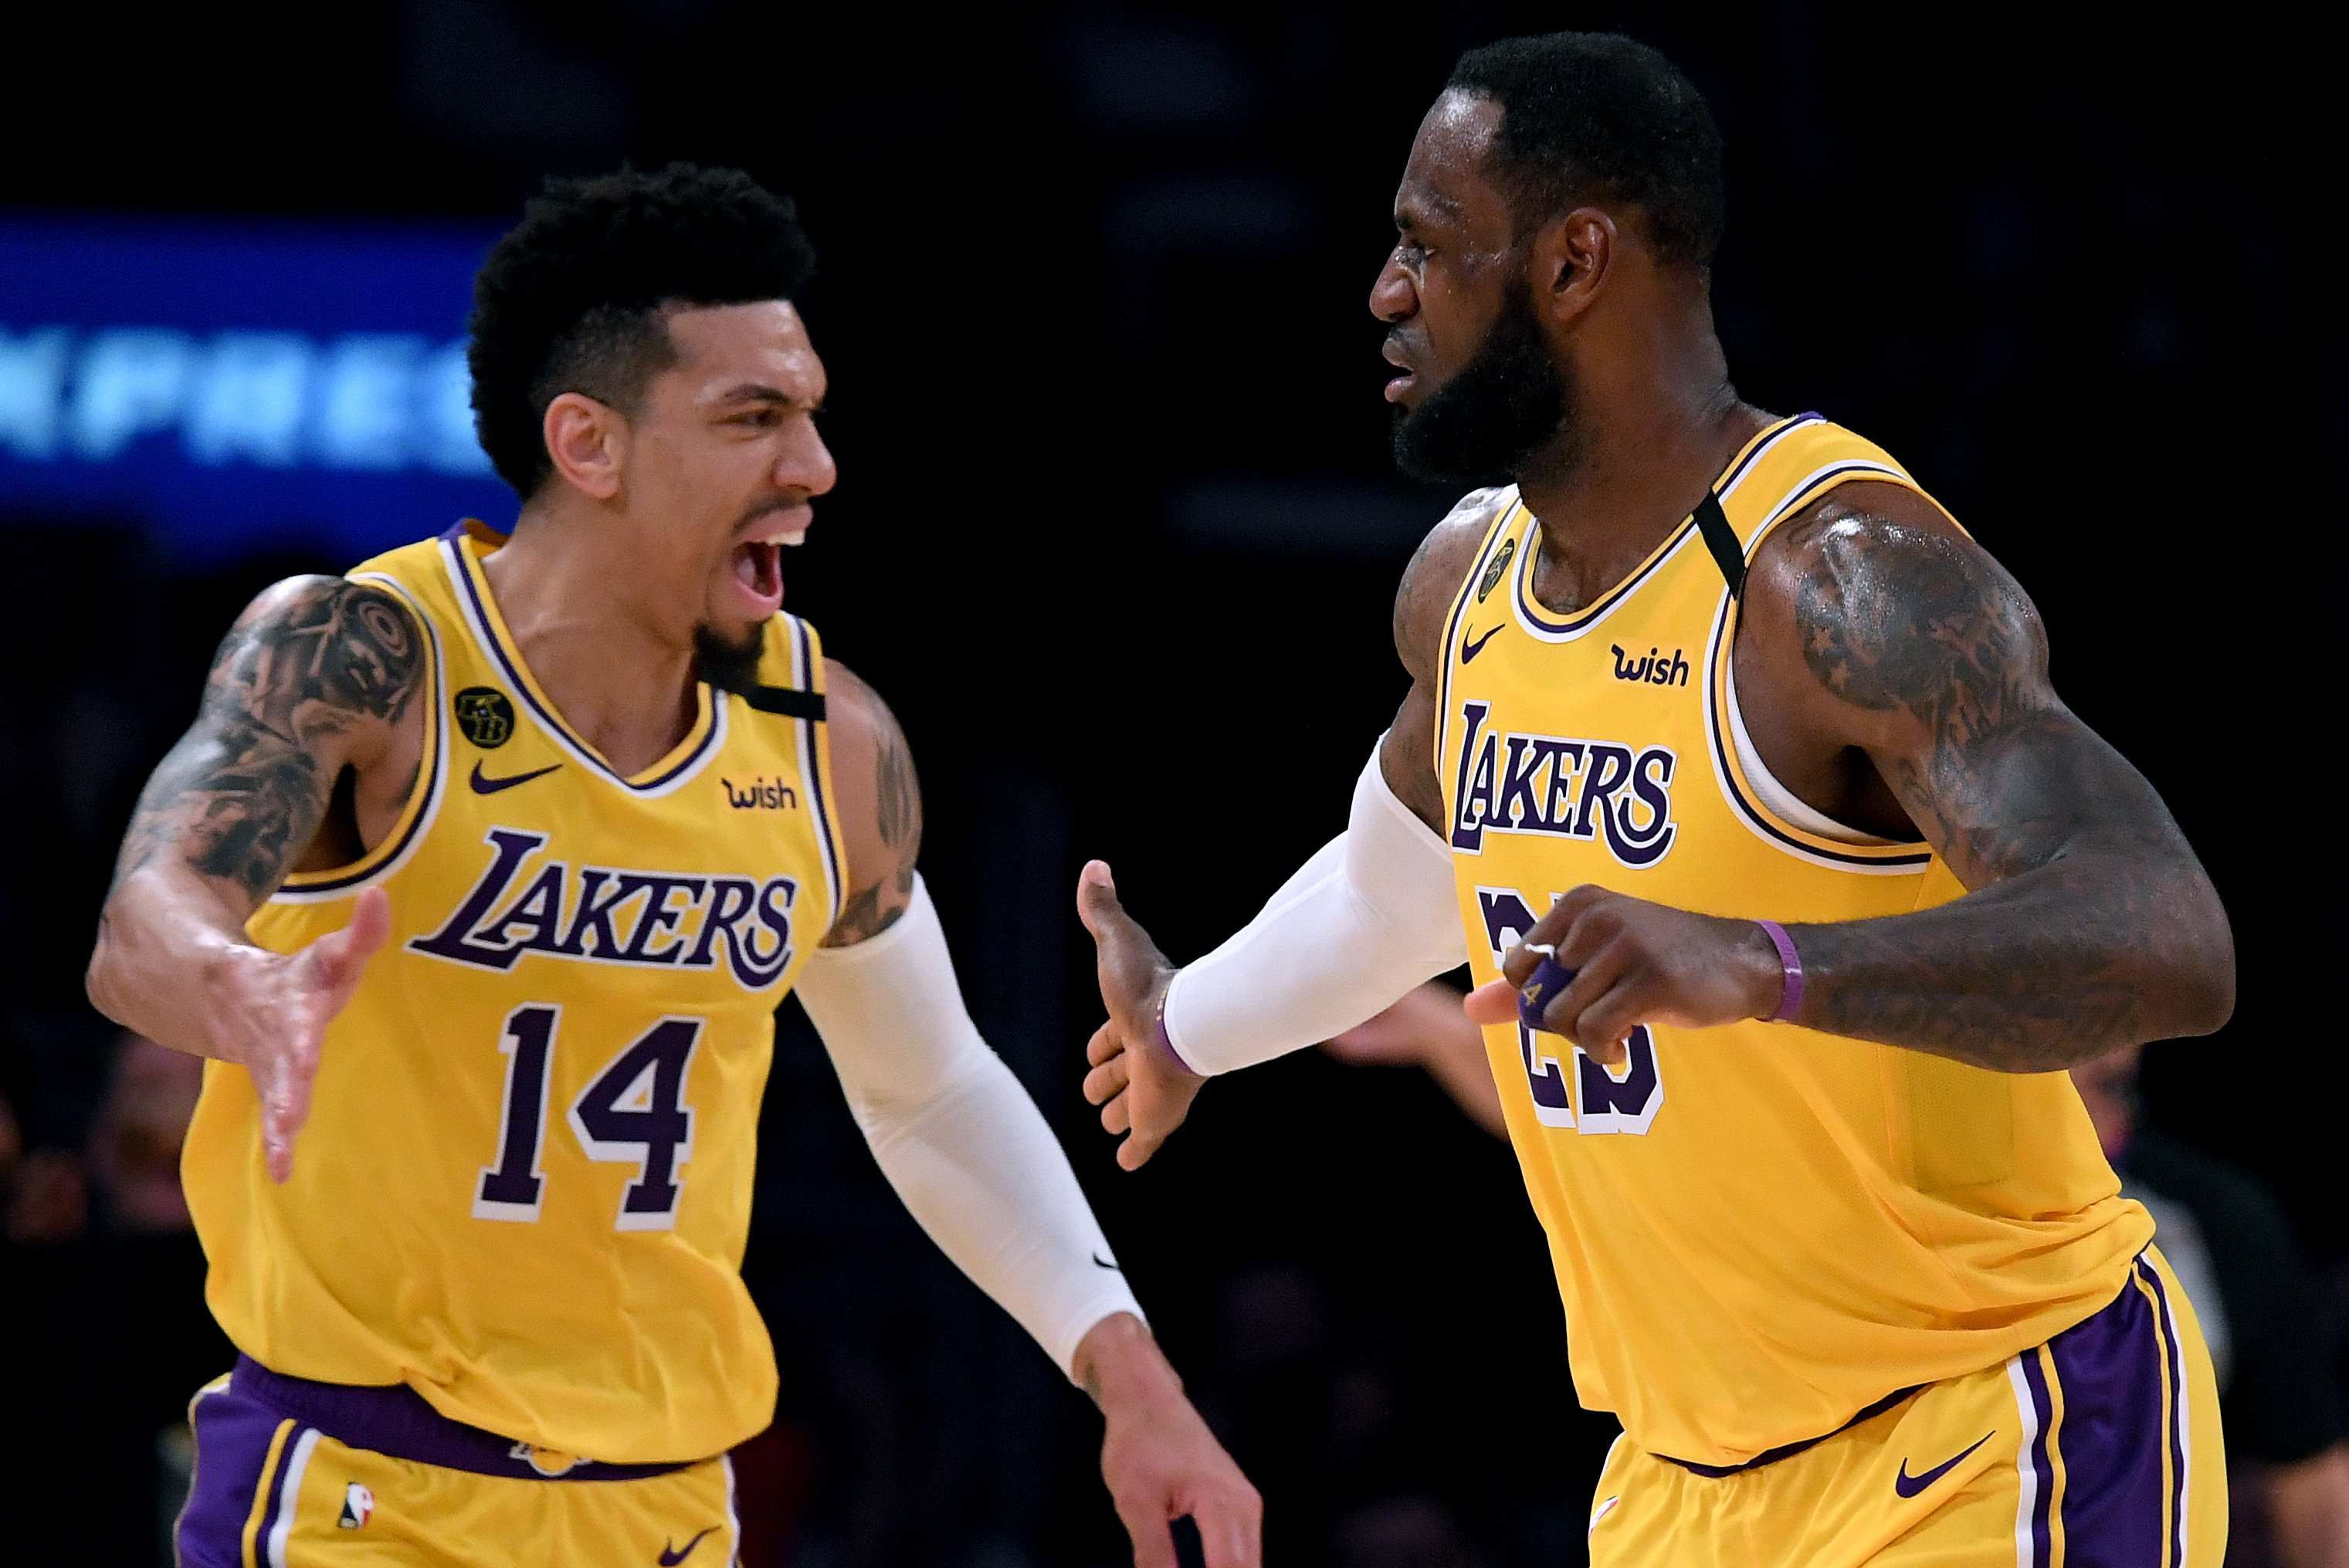 Lebron James Leading Lakers To Same Level As Kobe Bryant Danny Green Says Bleacher Report Latest News Videos And Highlights